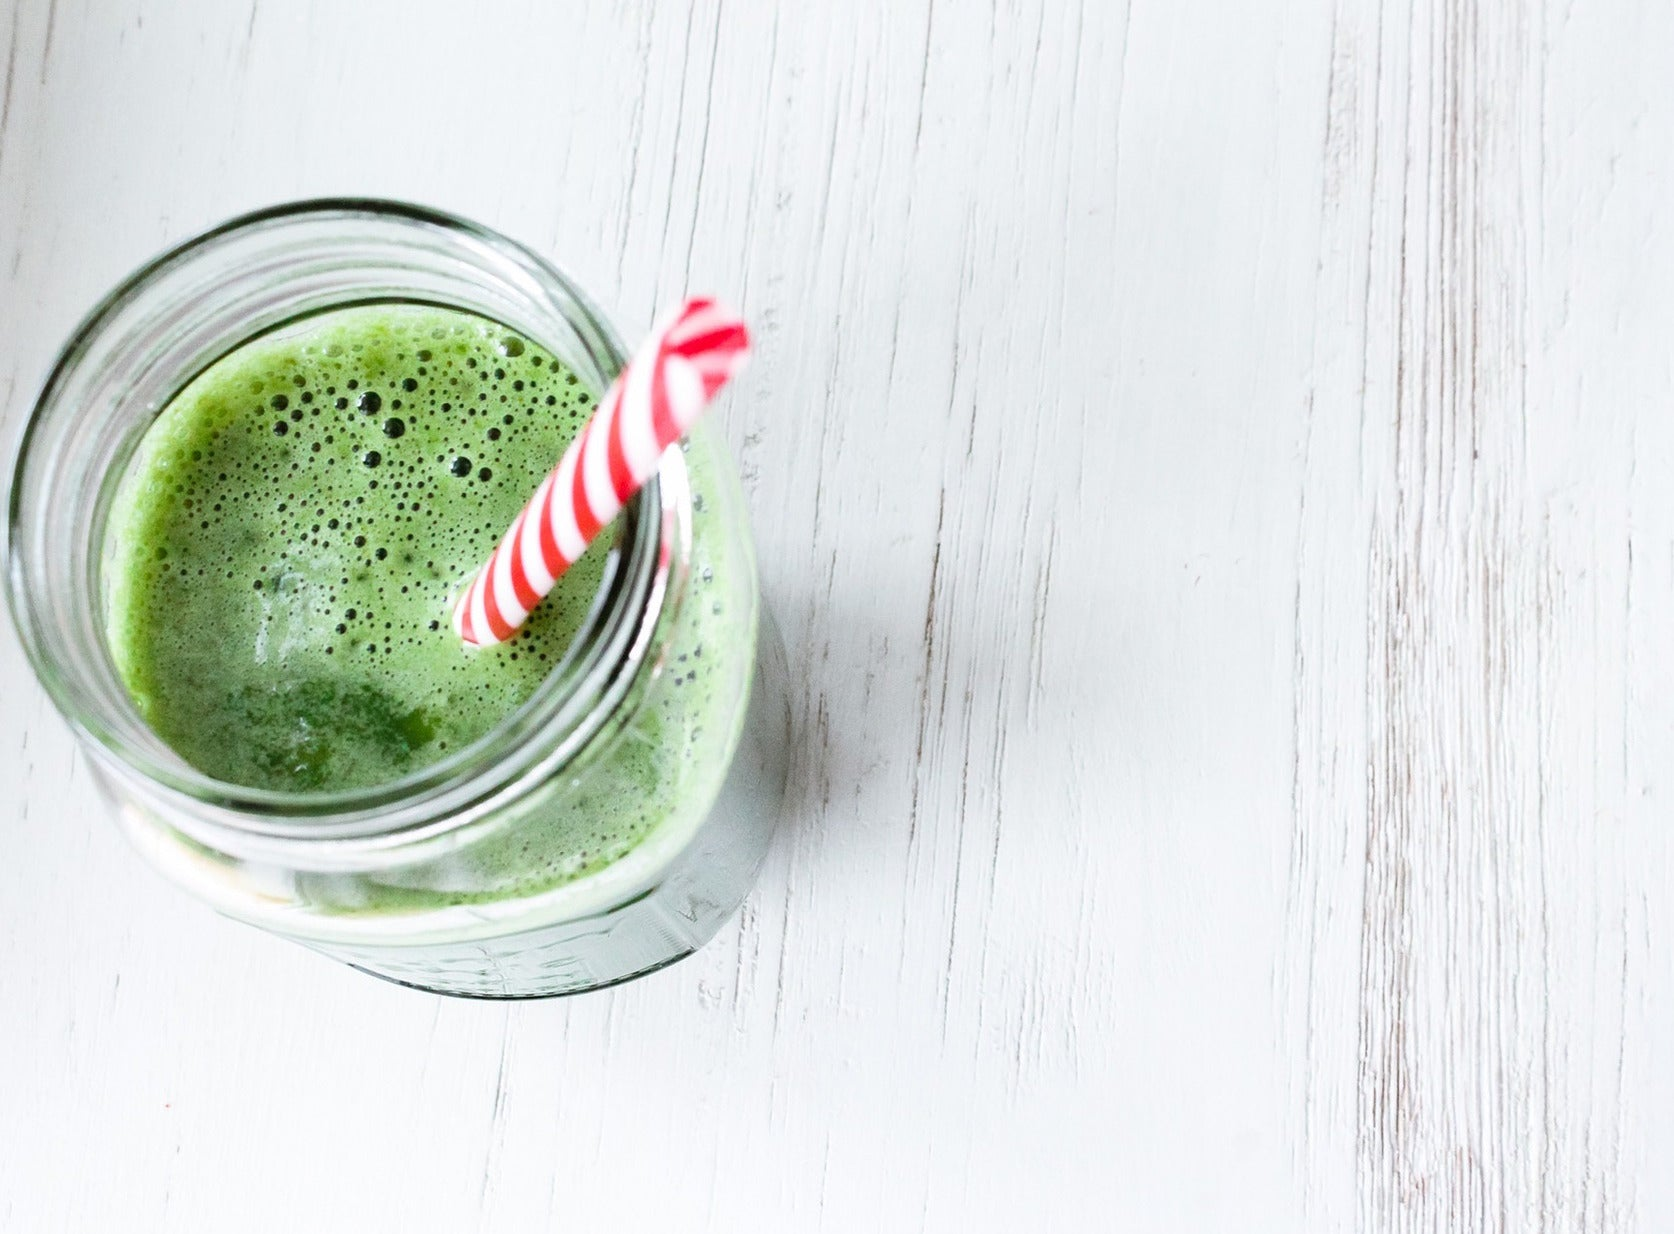 Struggling to eat enough greens?... try this delicious smoothie